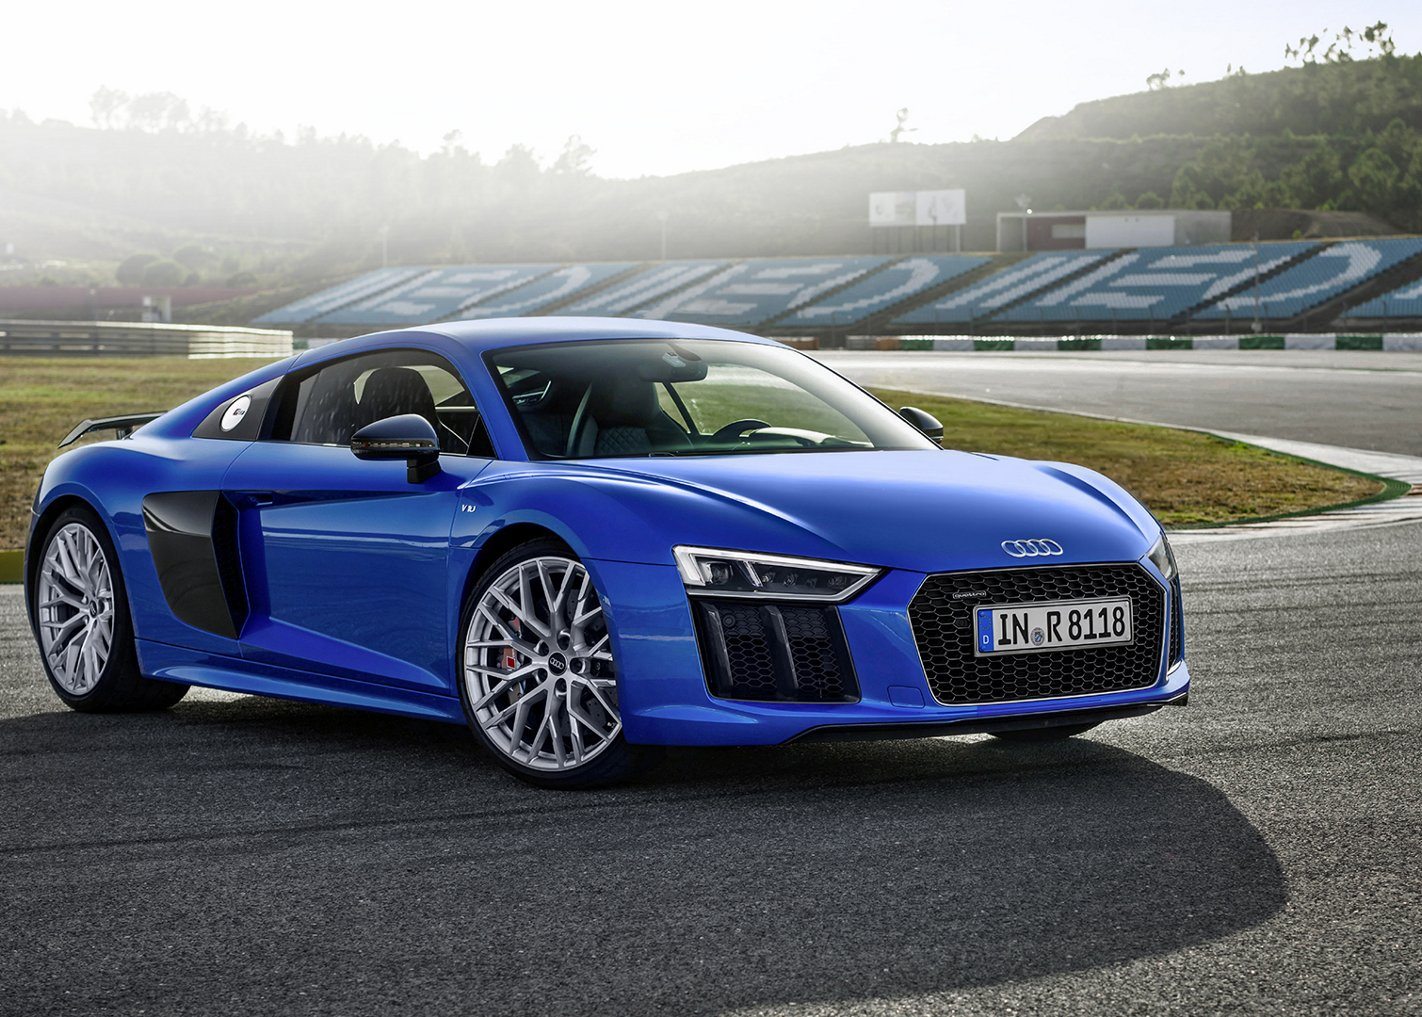 Audi R Lease Deals Offers Duluth GA - Audi r8 lease